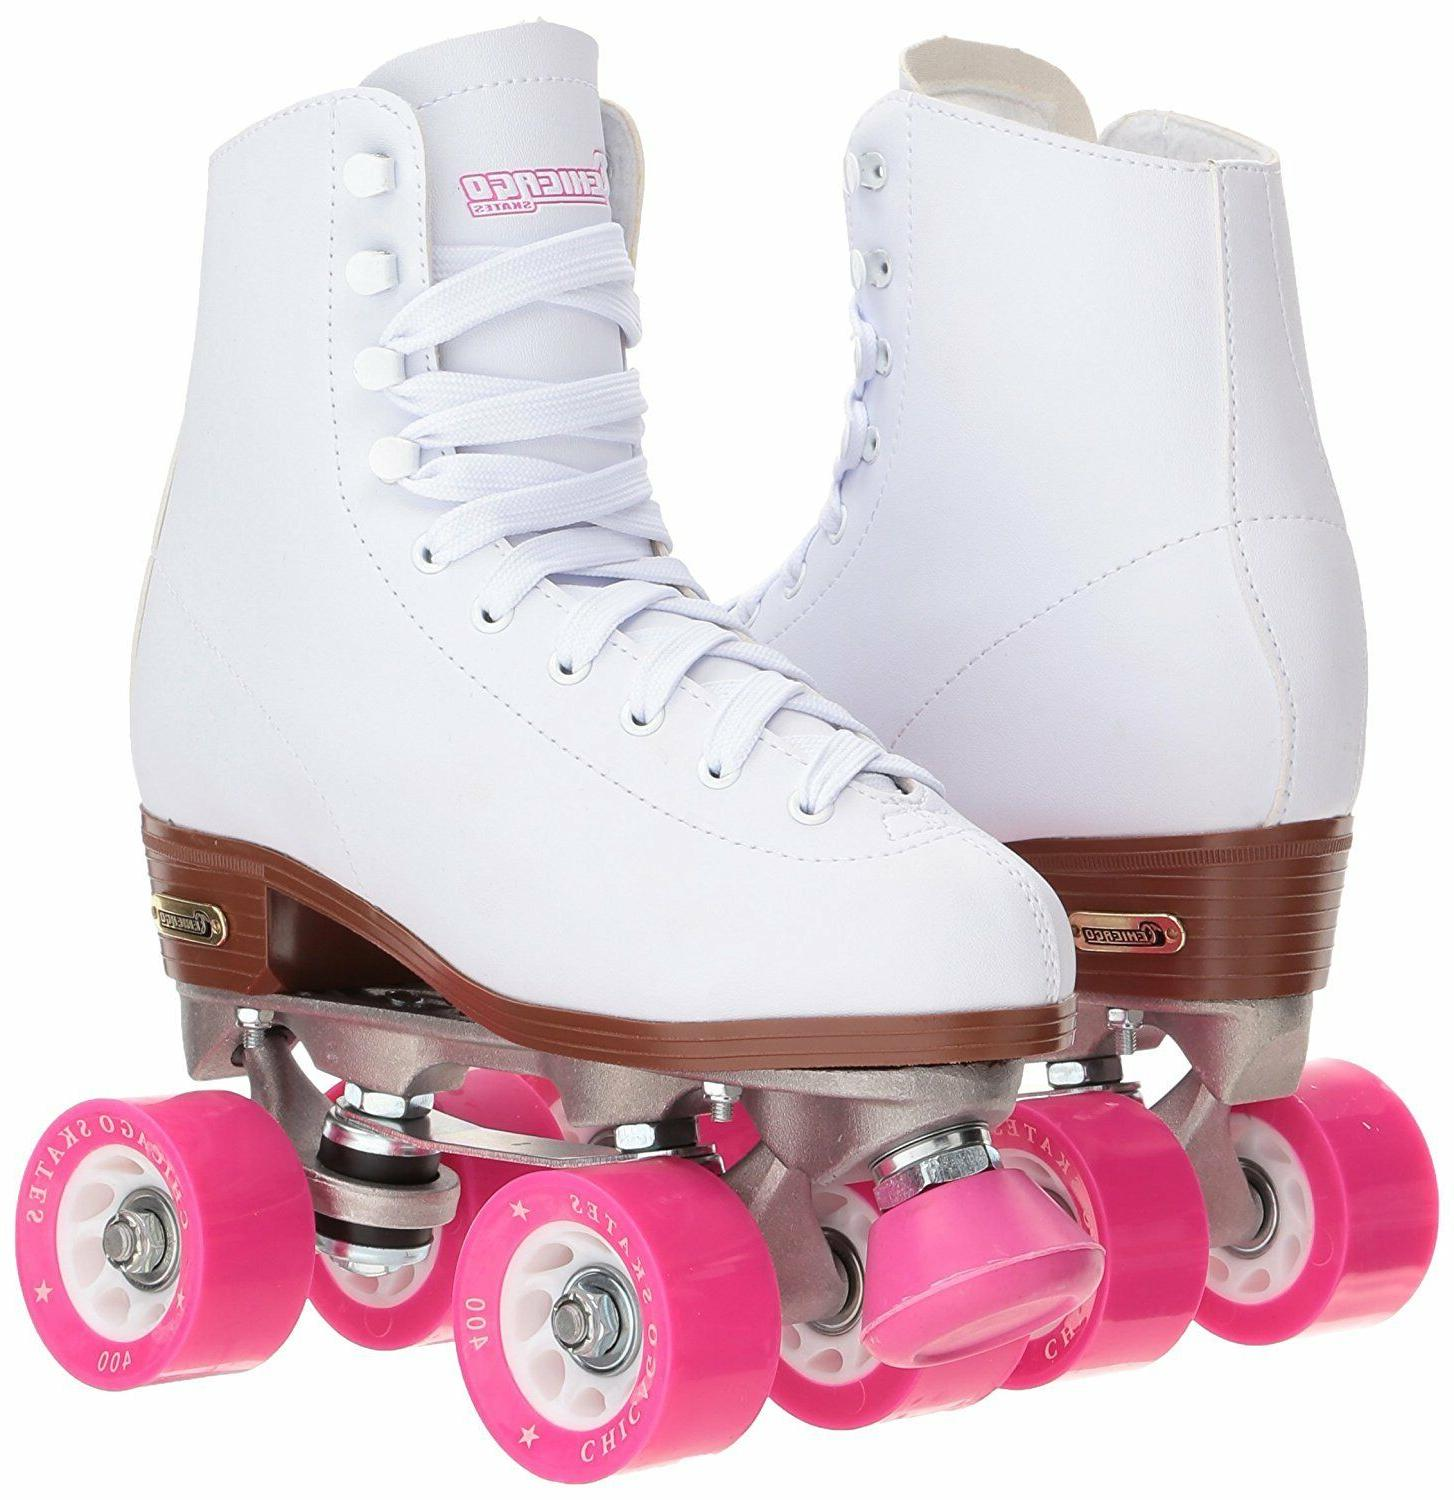 womens white classic rink roller skates by